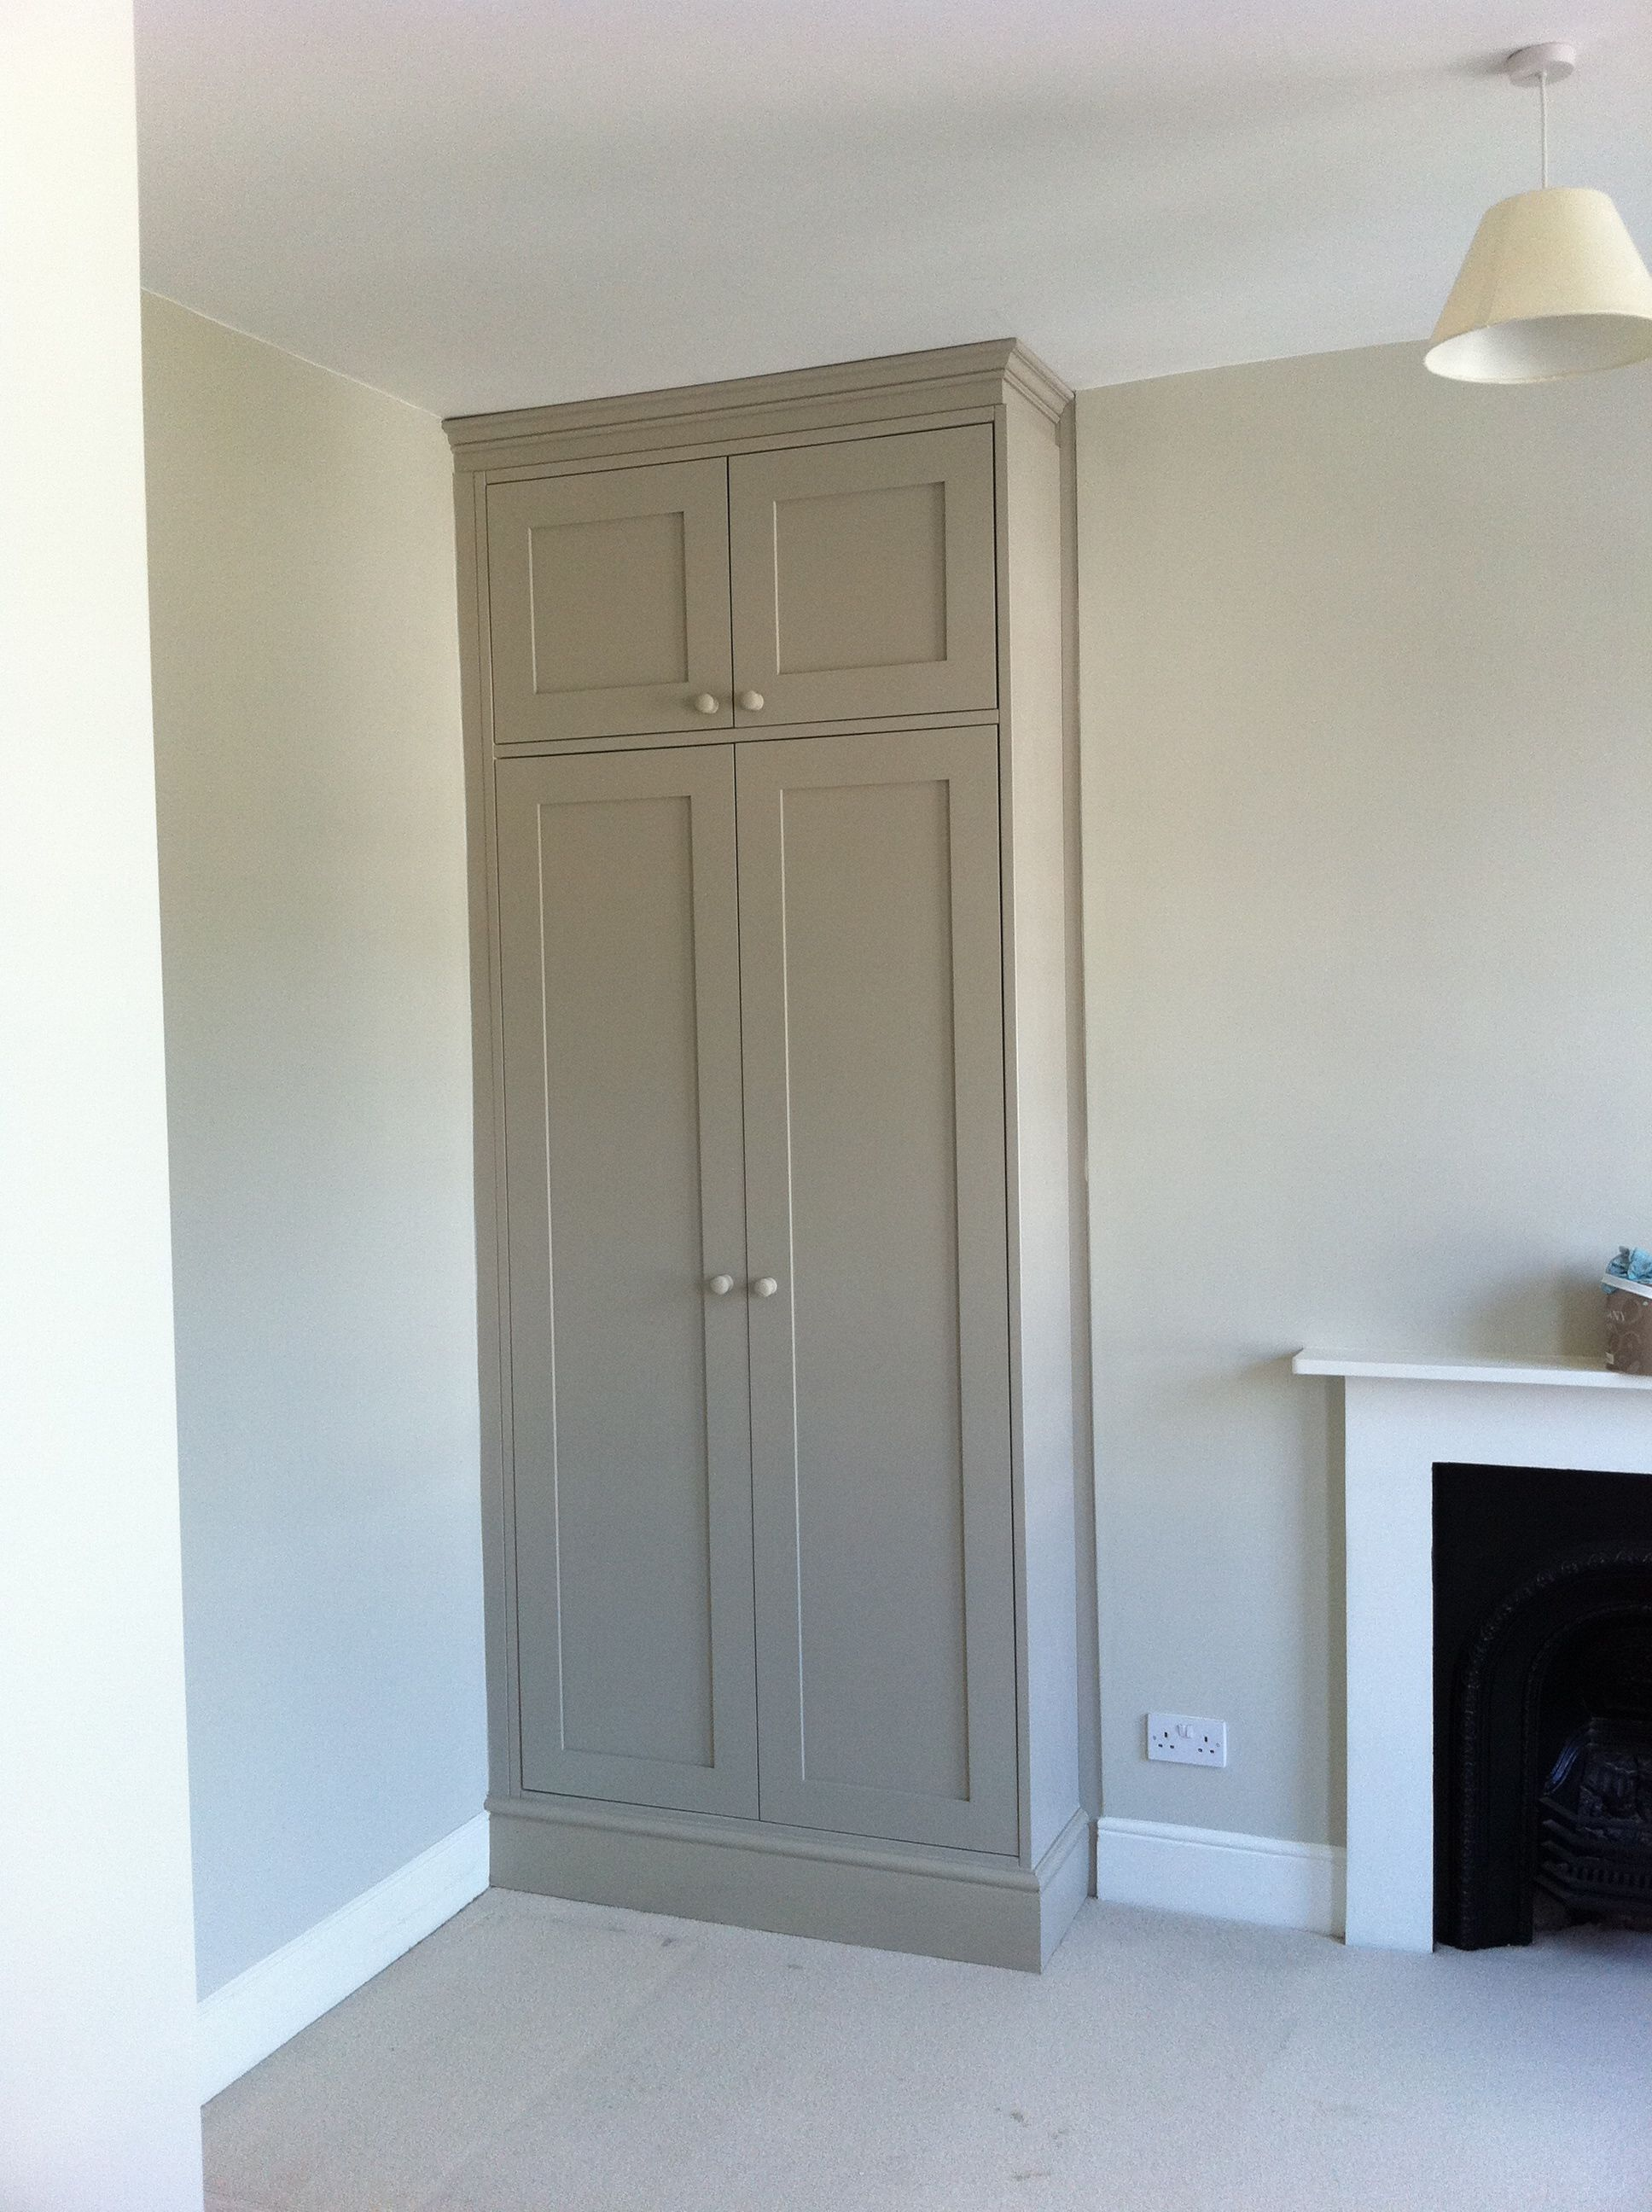 Bespoke fitted wardrobe With shaker panel doors By Fine